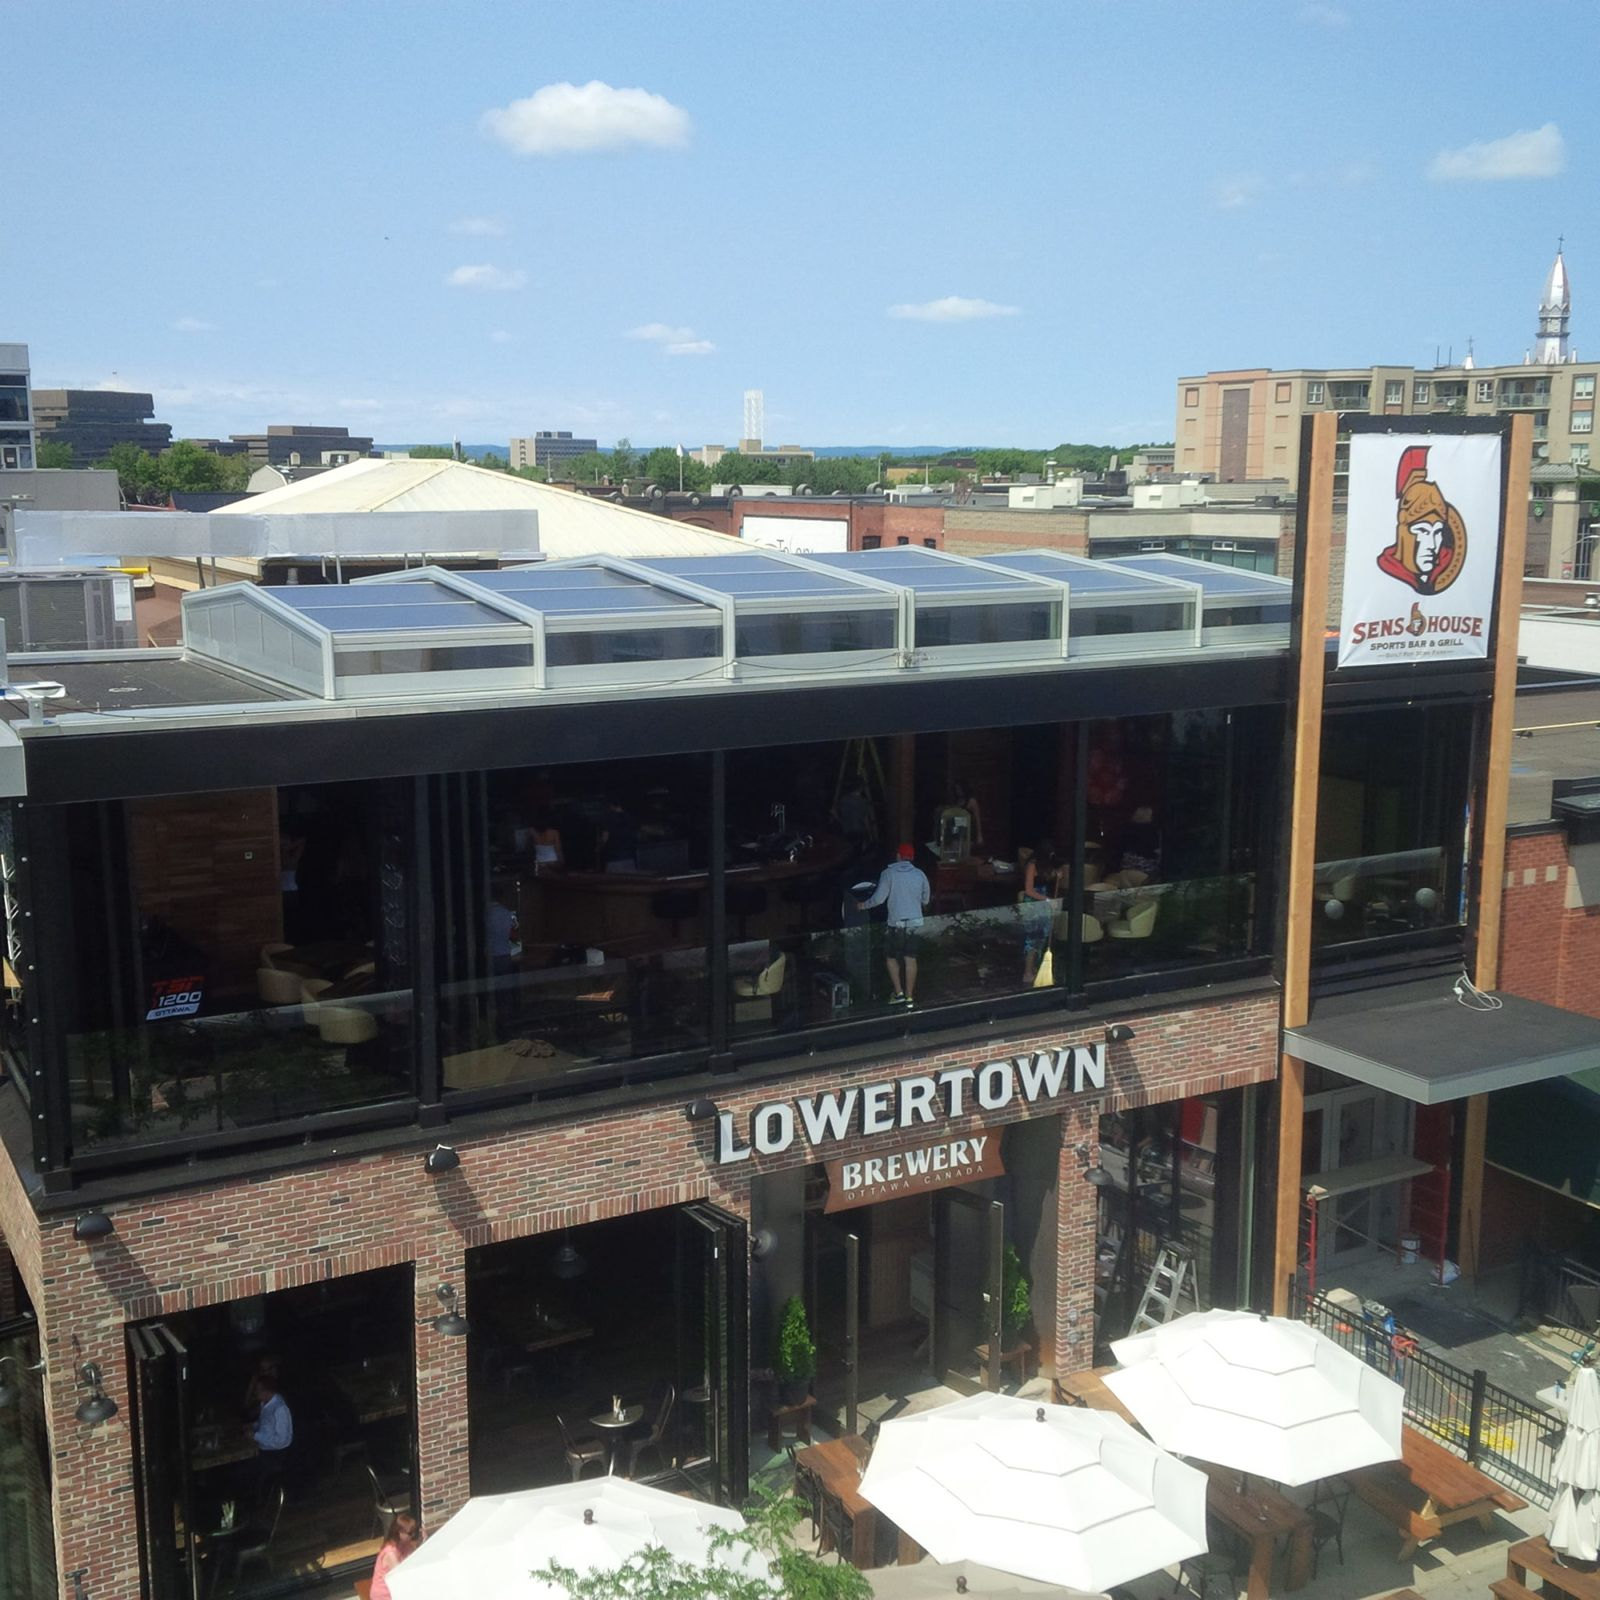 Retractable Skylight: These Restaurants Benefit from Retractable Skylights